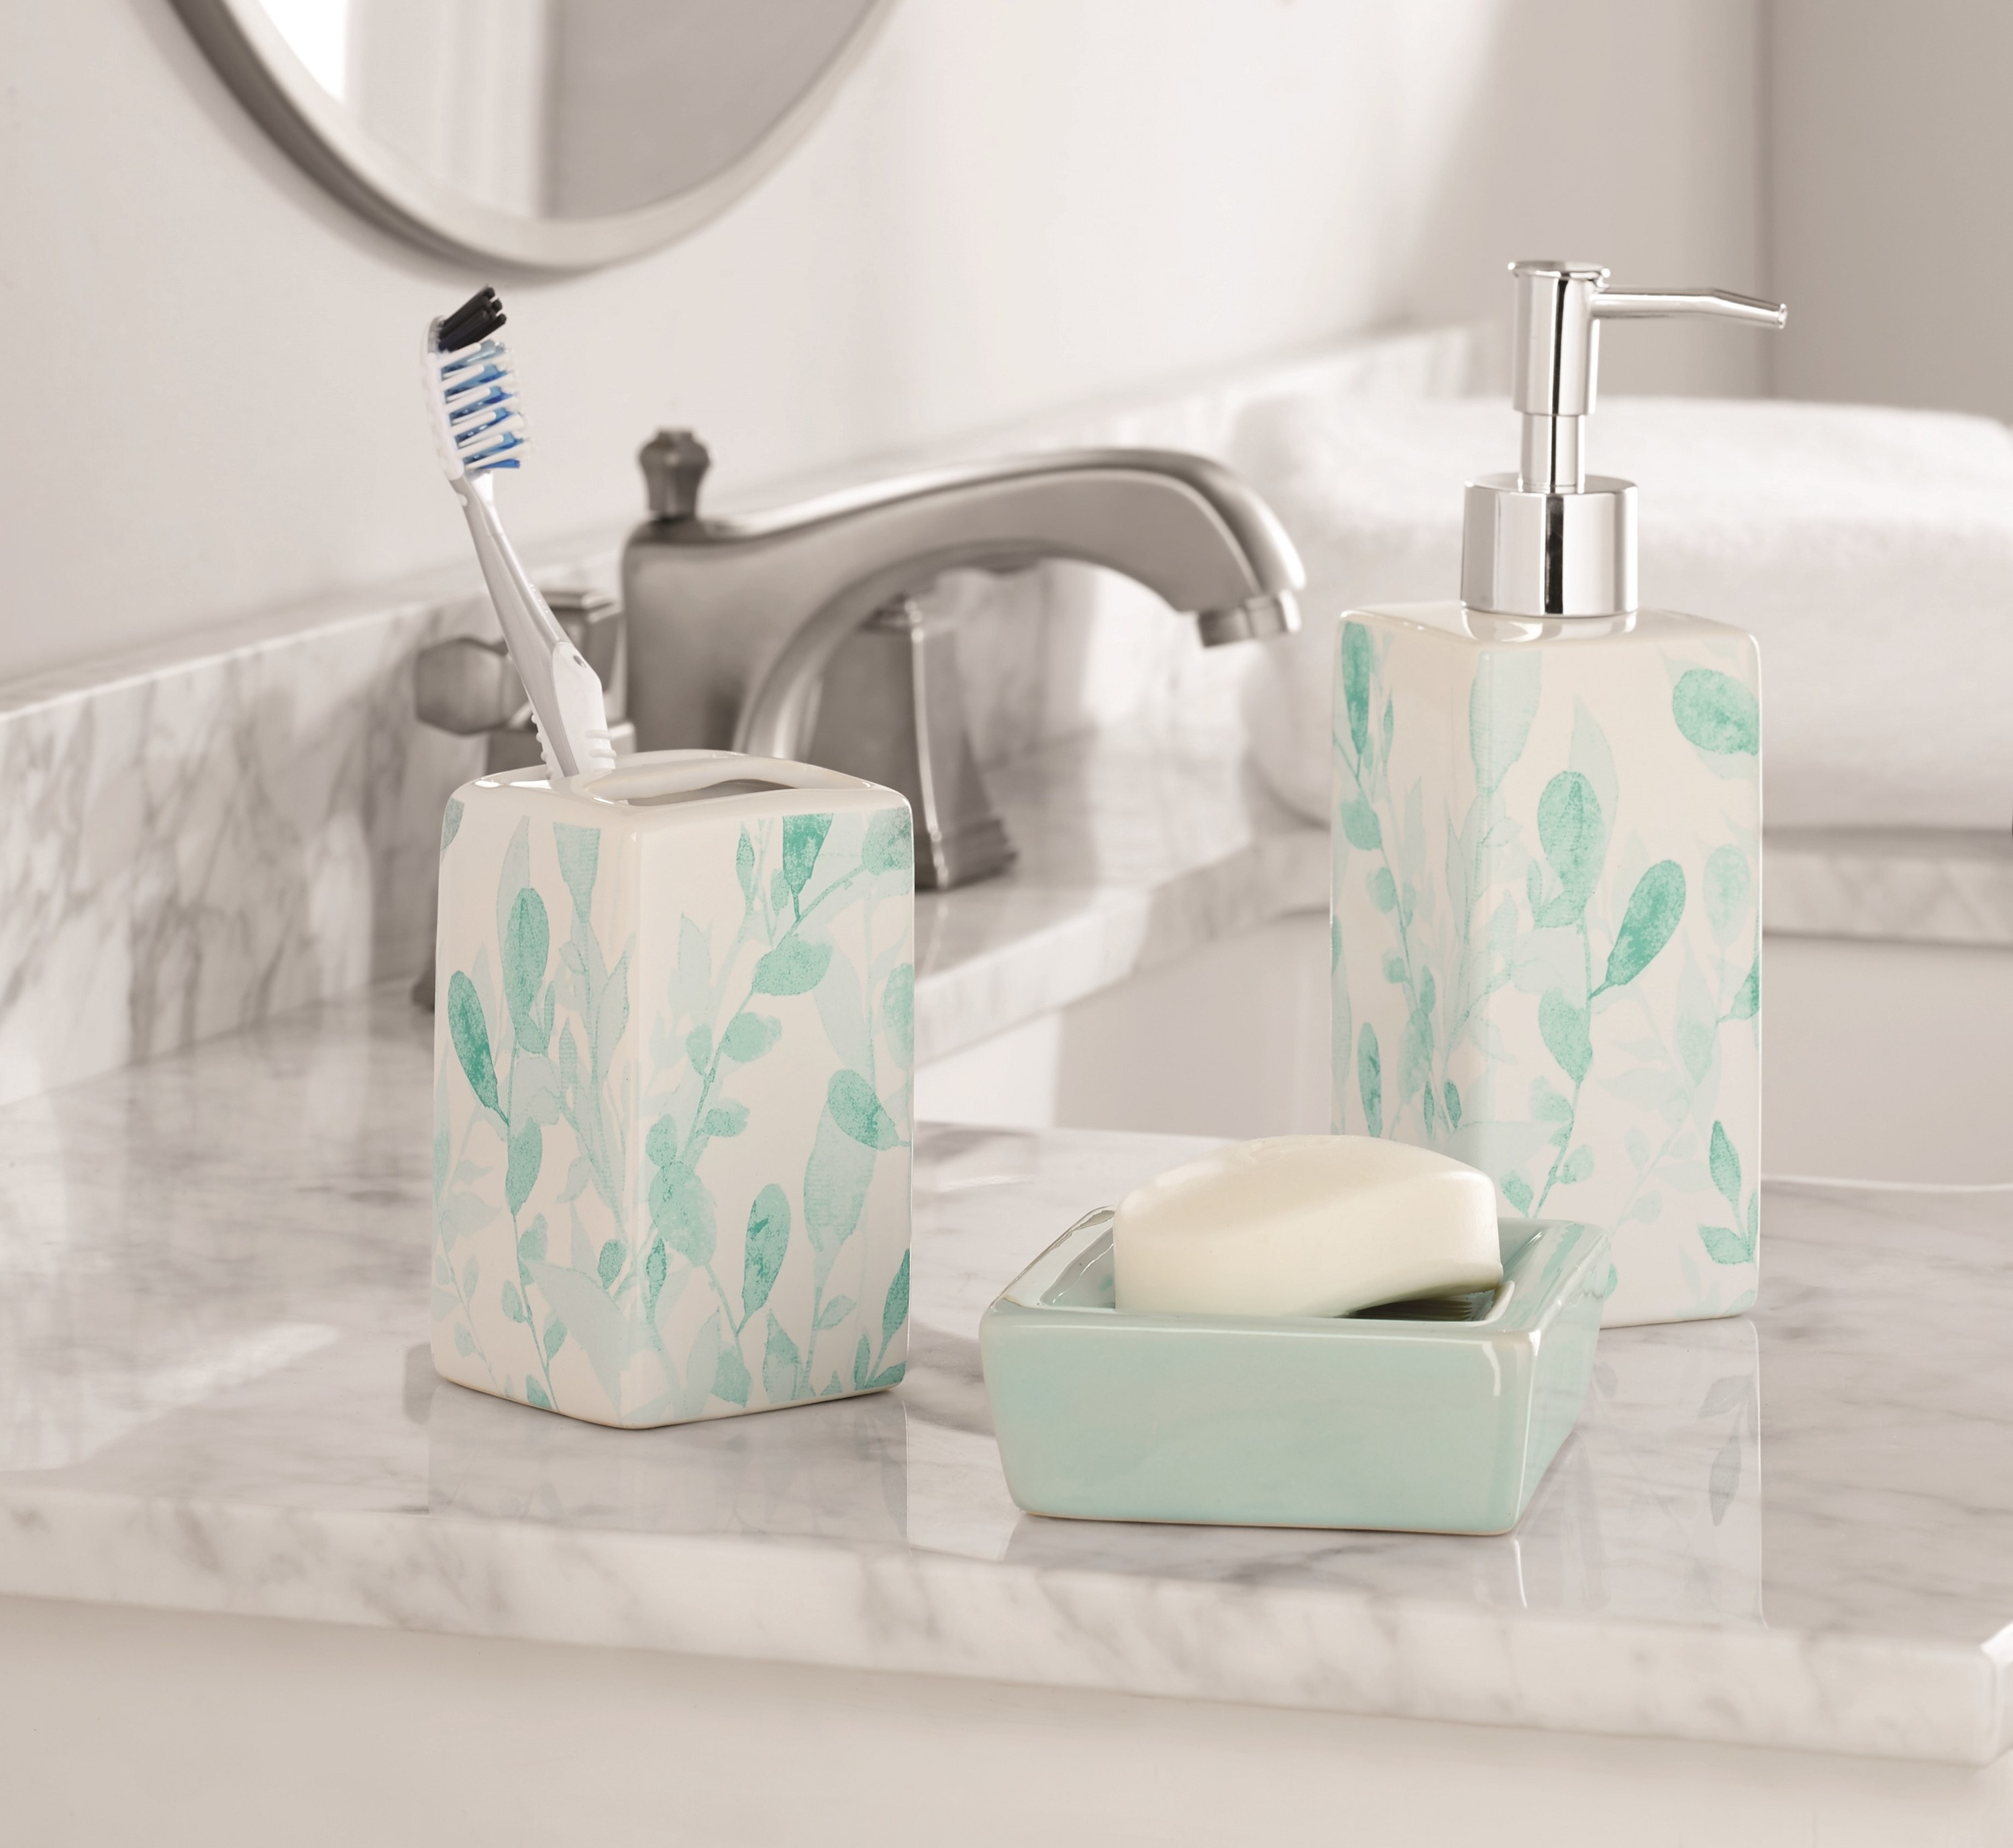 The toothbrush holder, soap dispenser, and soap bar holder in light green leaf pattern